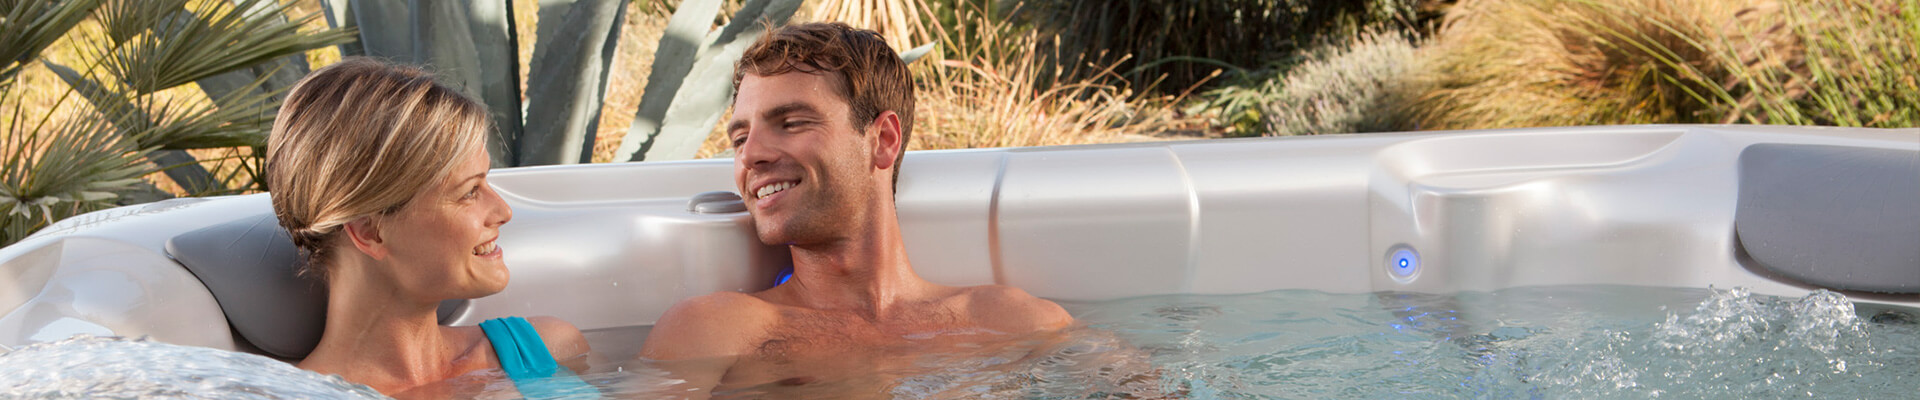 Pain Free Exercise in the Backyard Spa, Hot Tubs for Sale St Louis